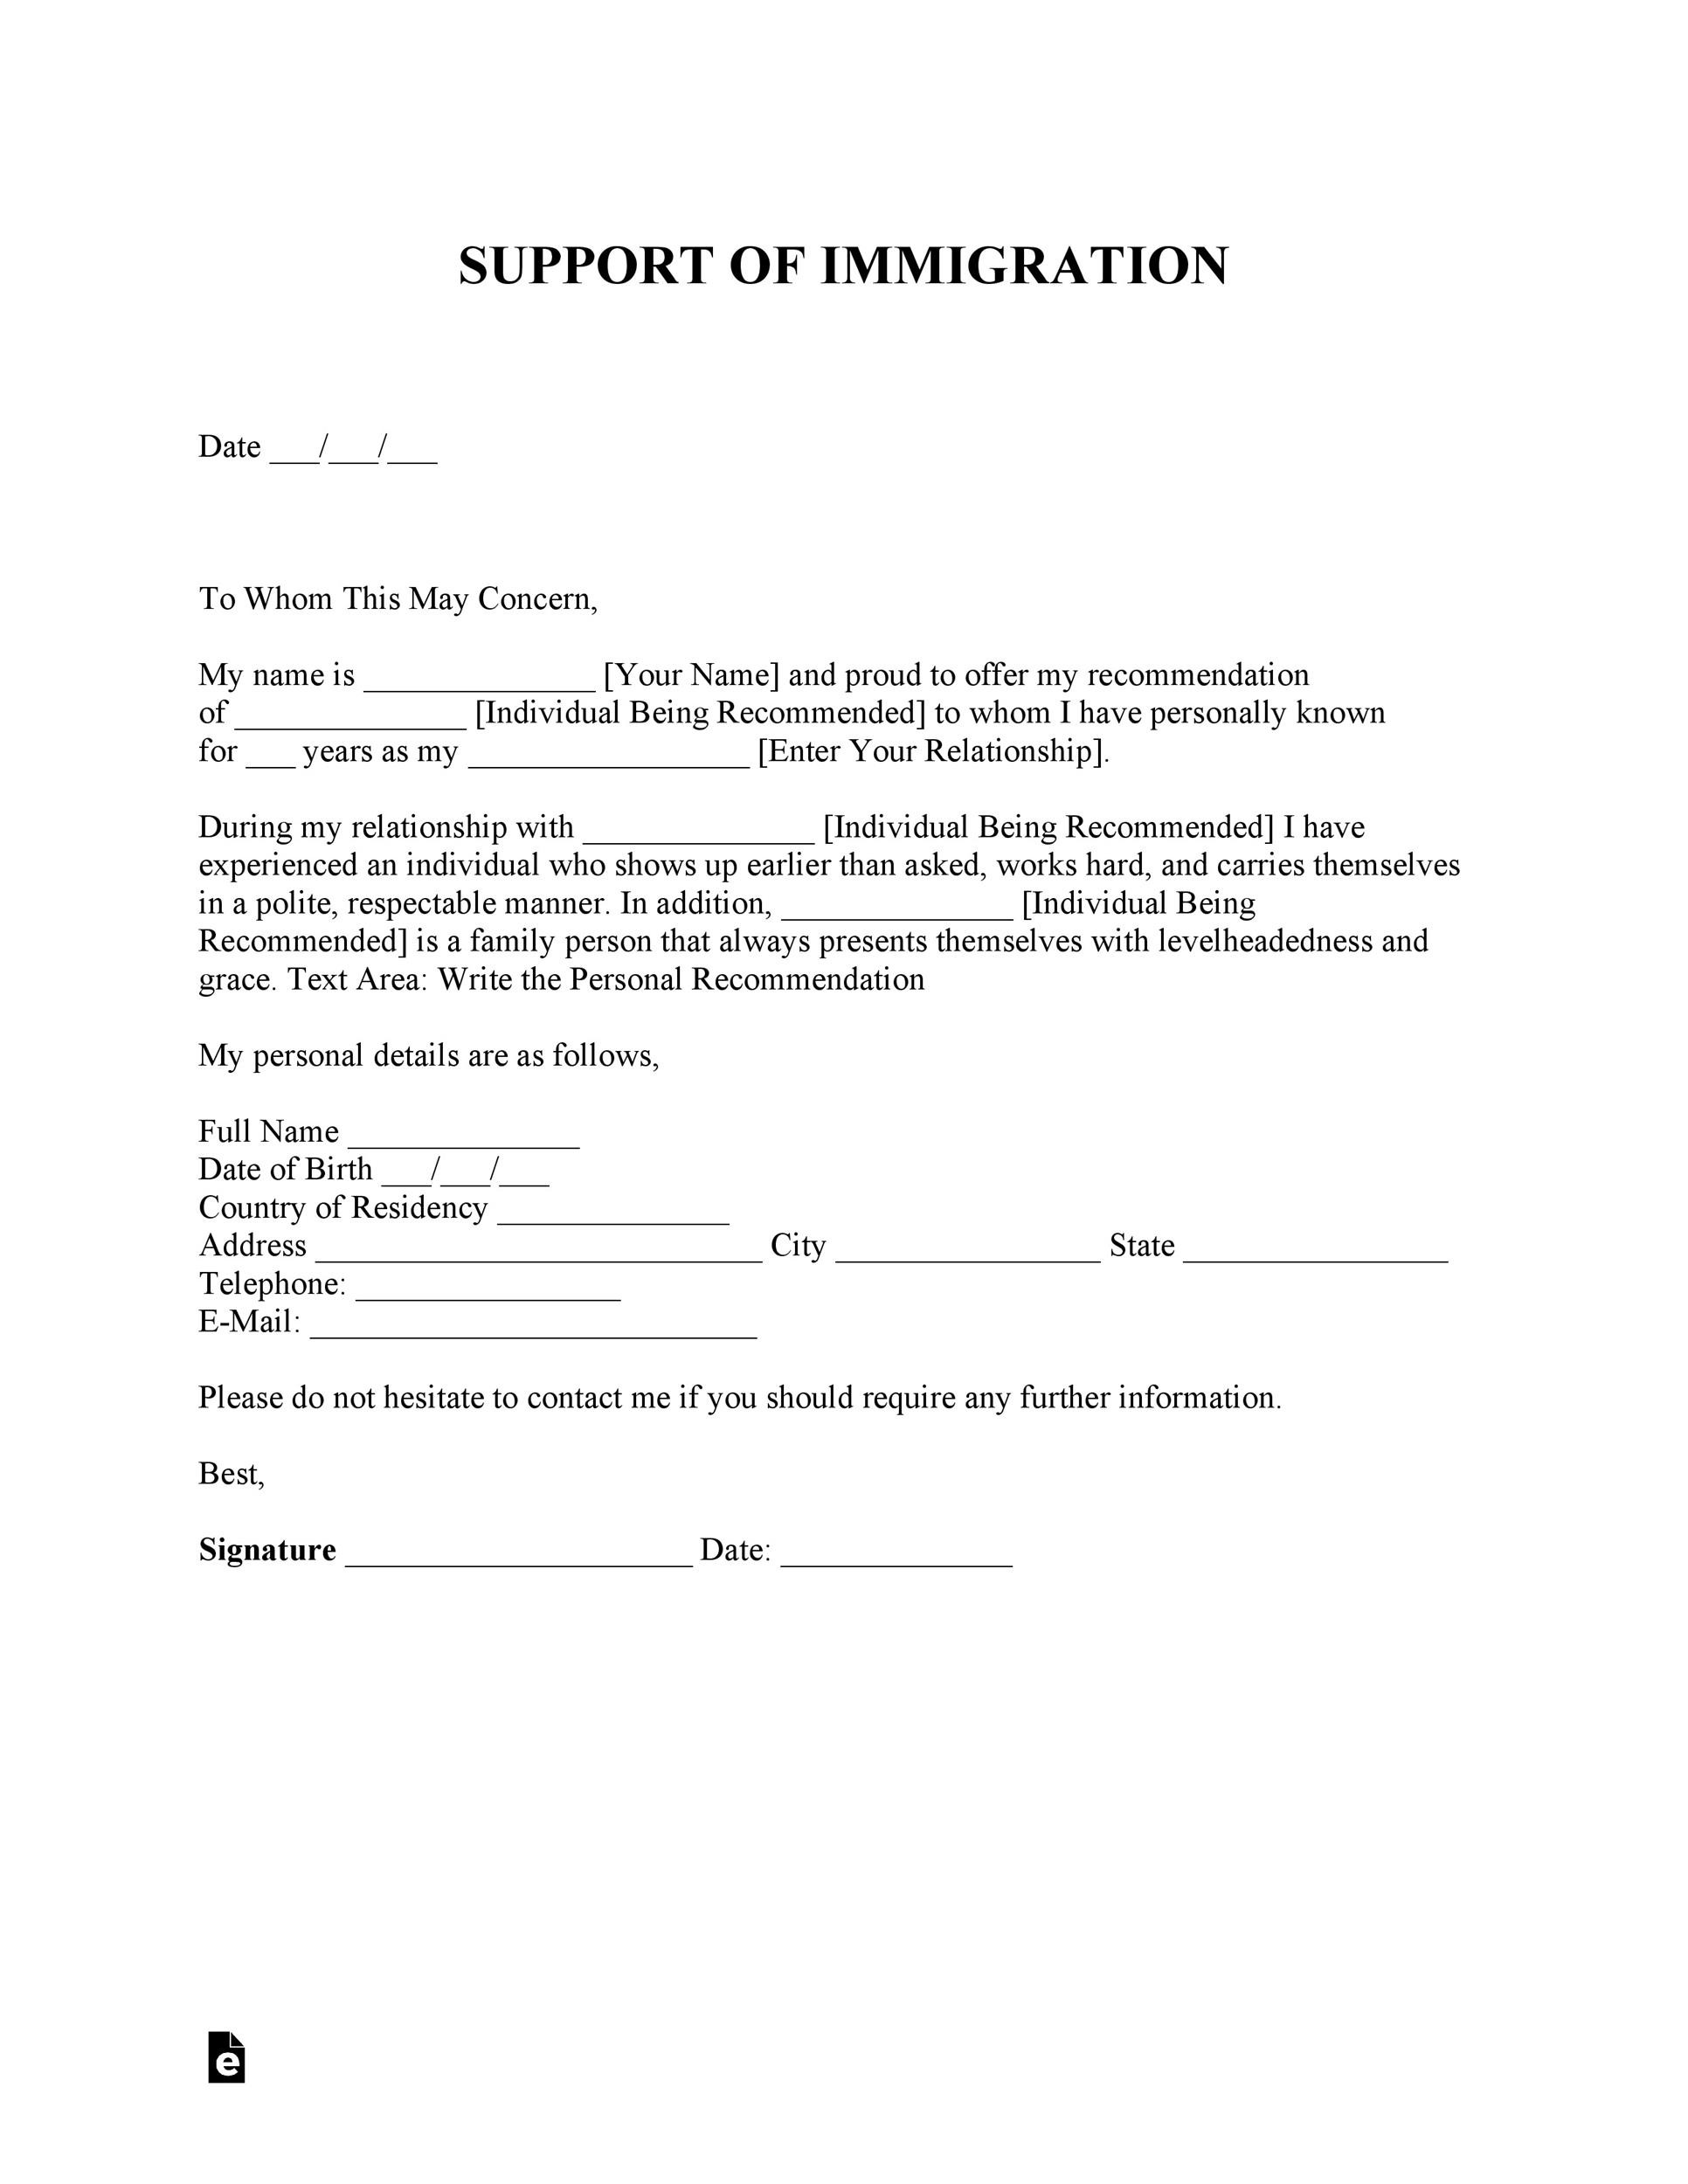 Sample Immigration Reference Letter For A Friend